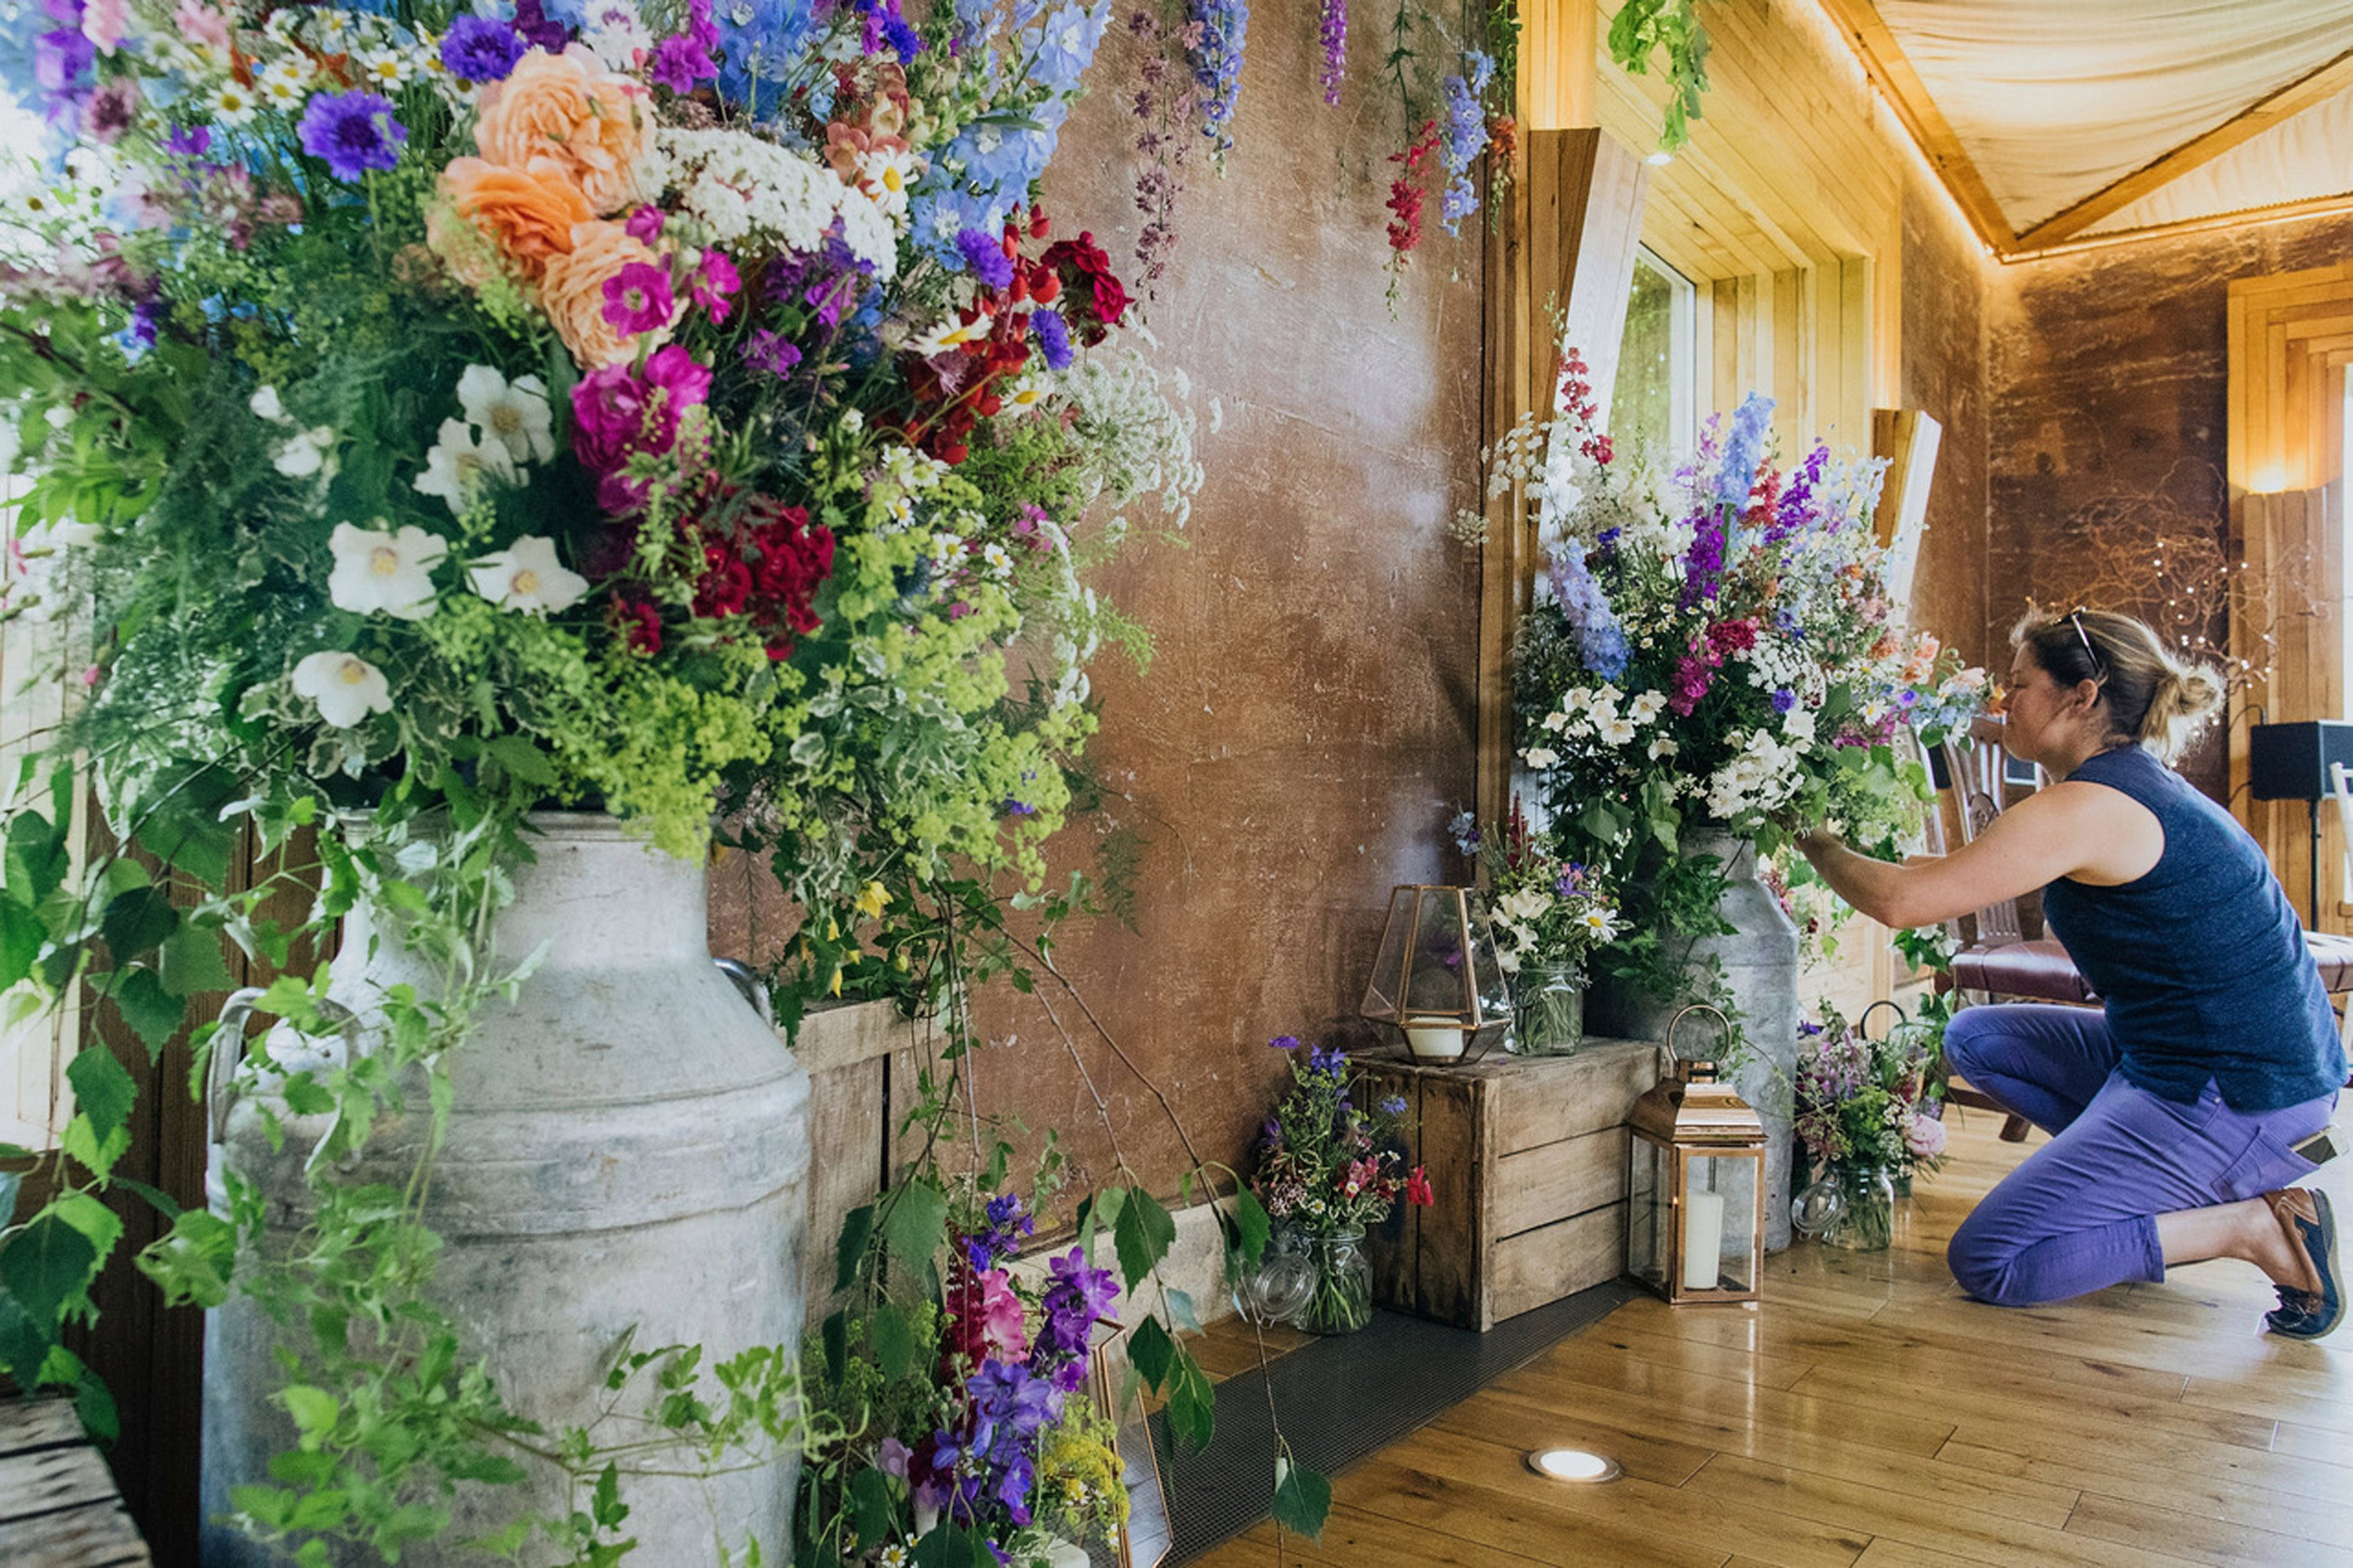 Summer wedding wildflowers at Elmore Court